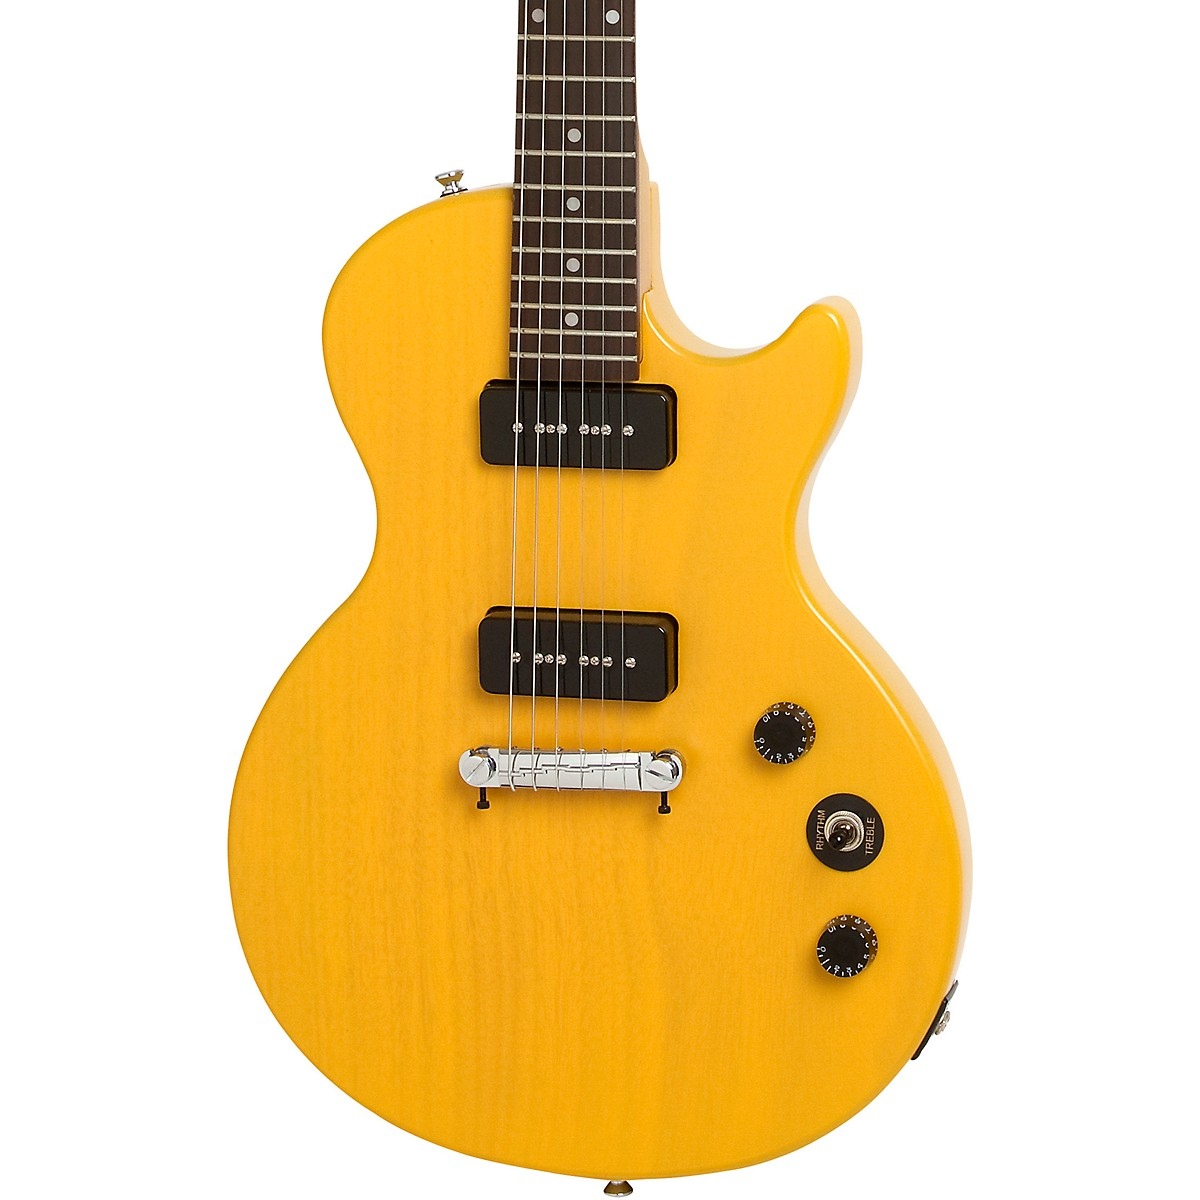 Epiphone Les Paul Special I P-90 Limited-Edition Electric Guitar